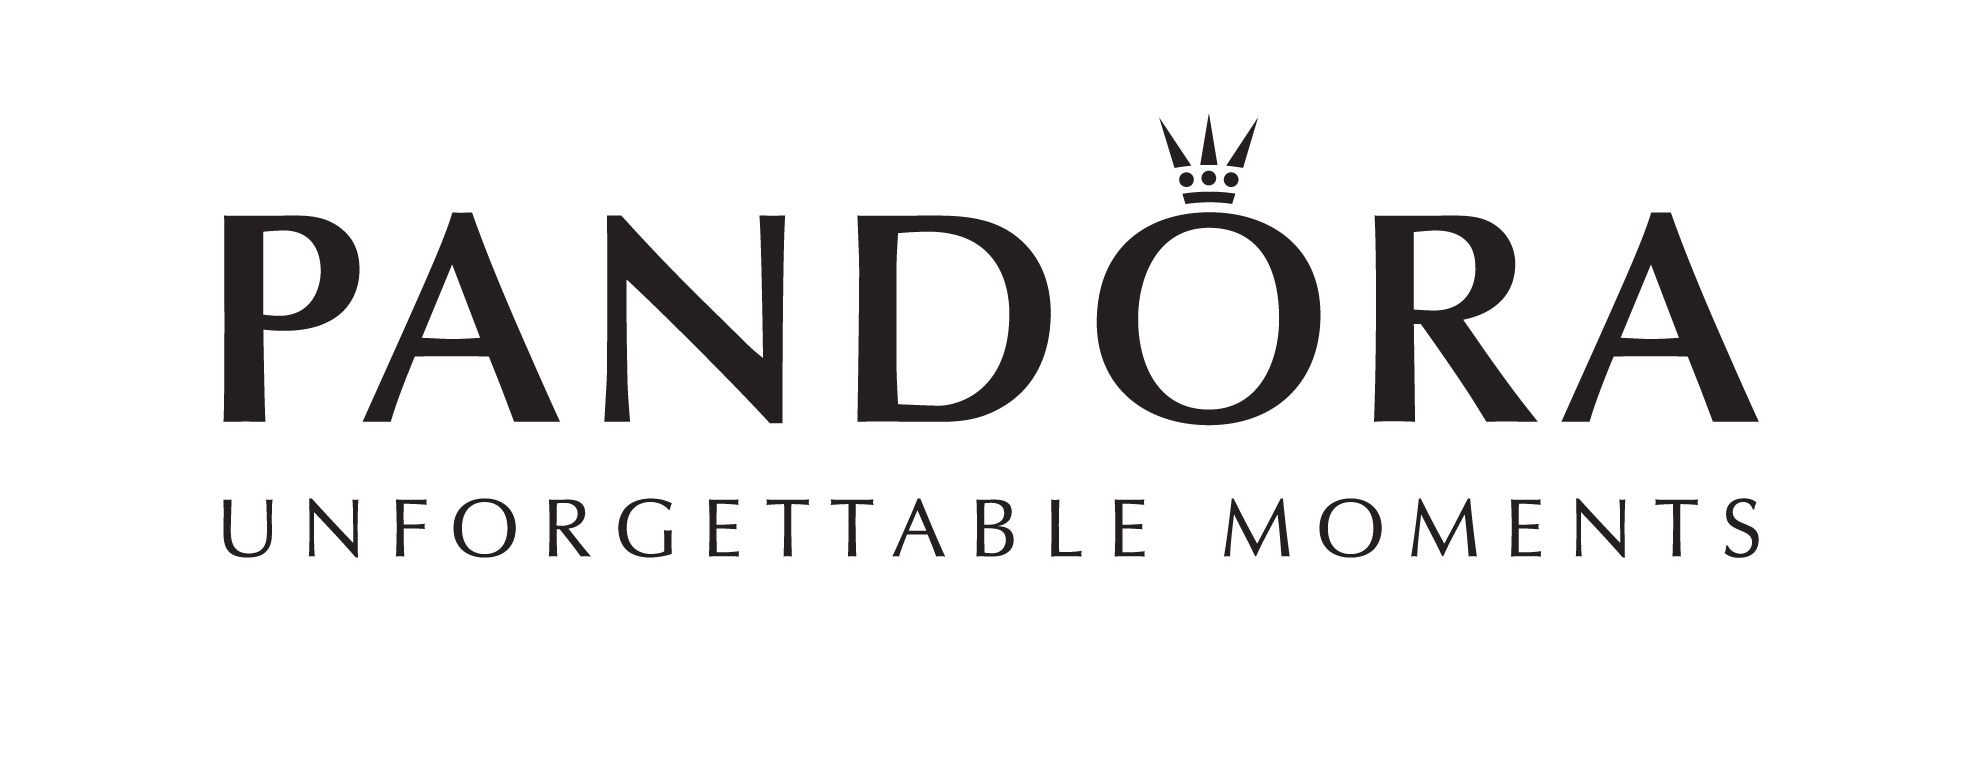 Pandora designs, manufactures and markets hand-finished